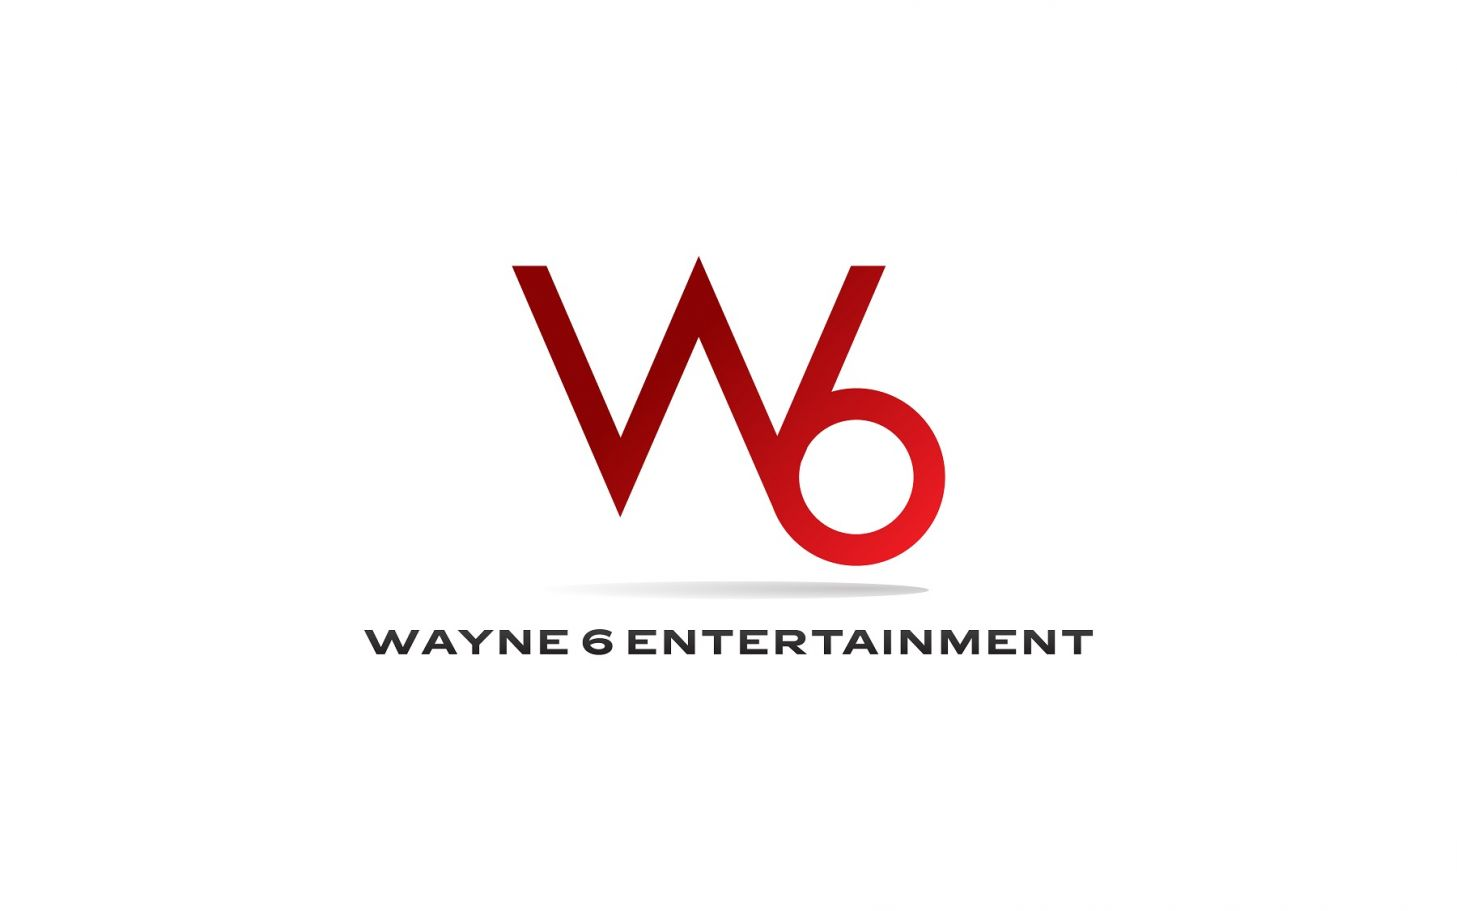 Wayne 6 Entertainment Logo